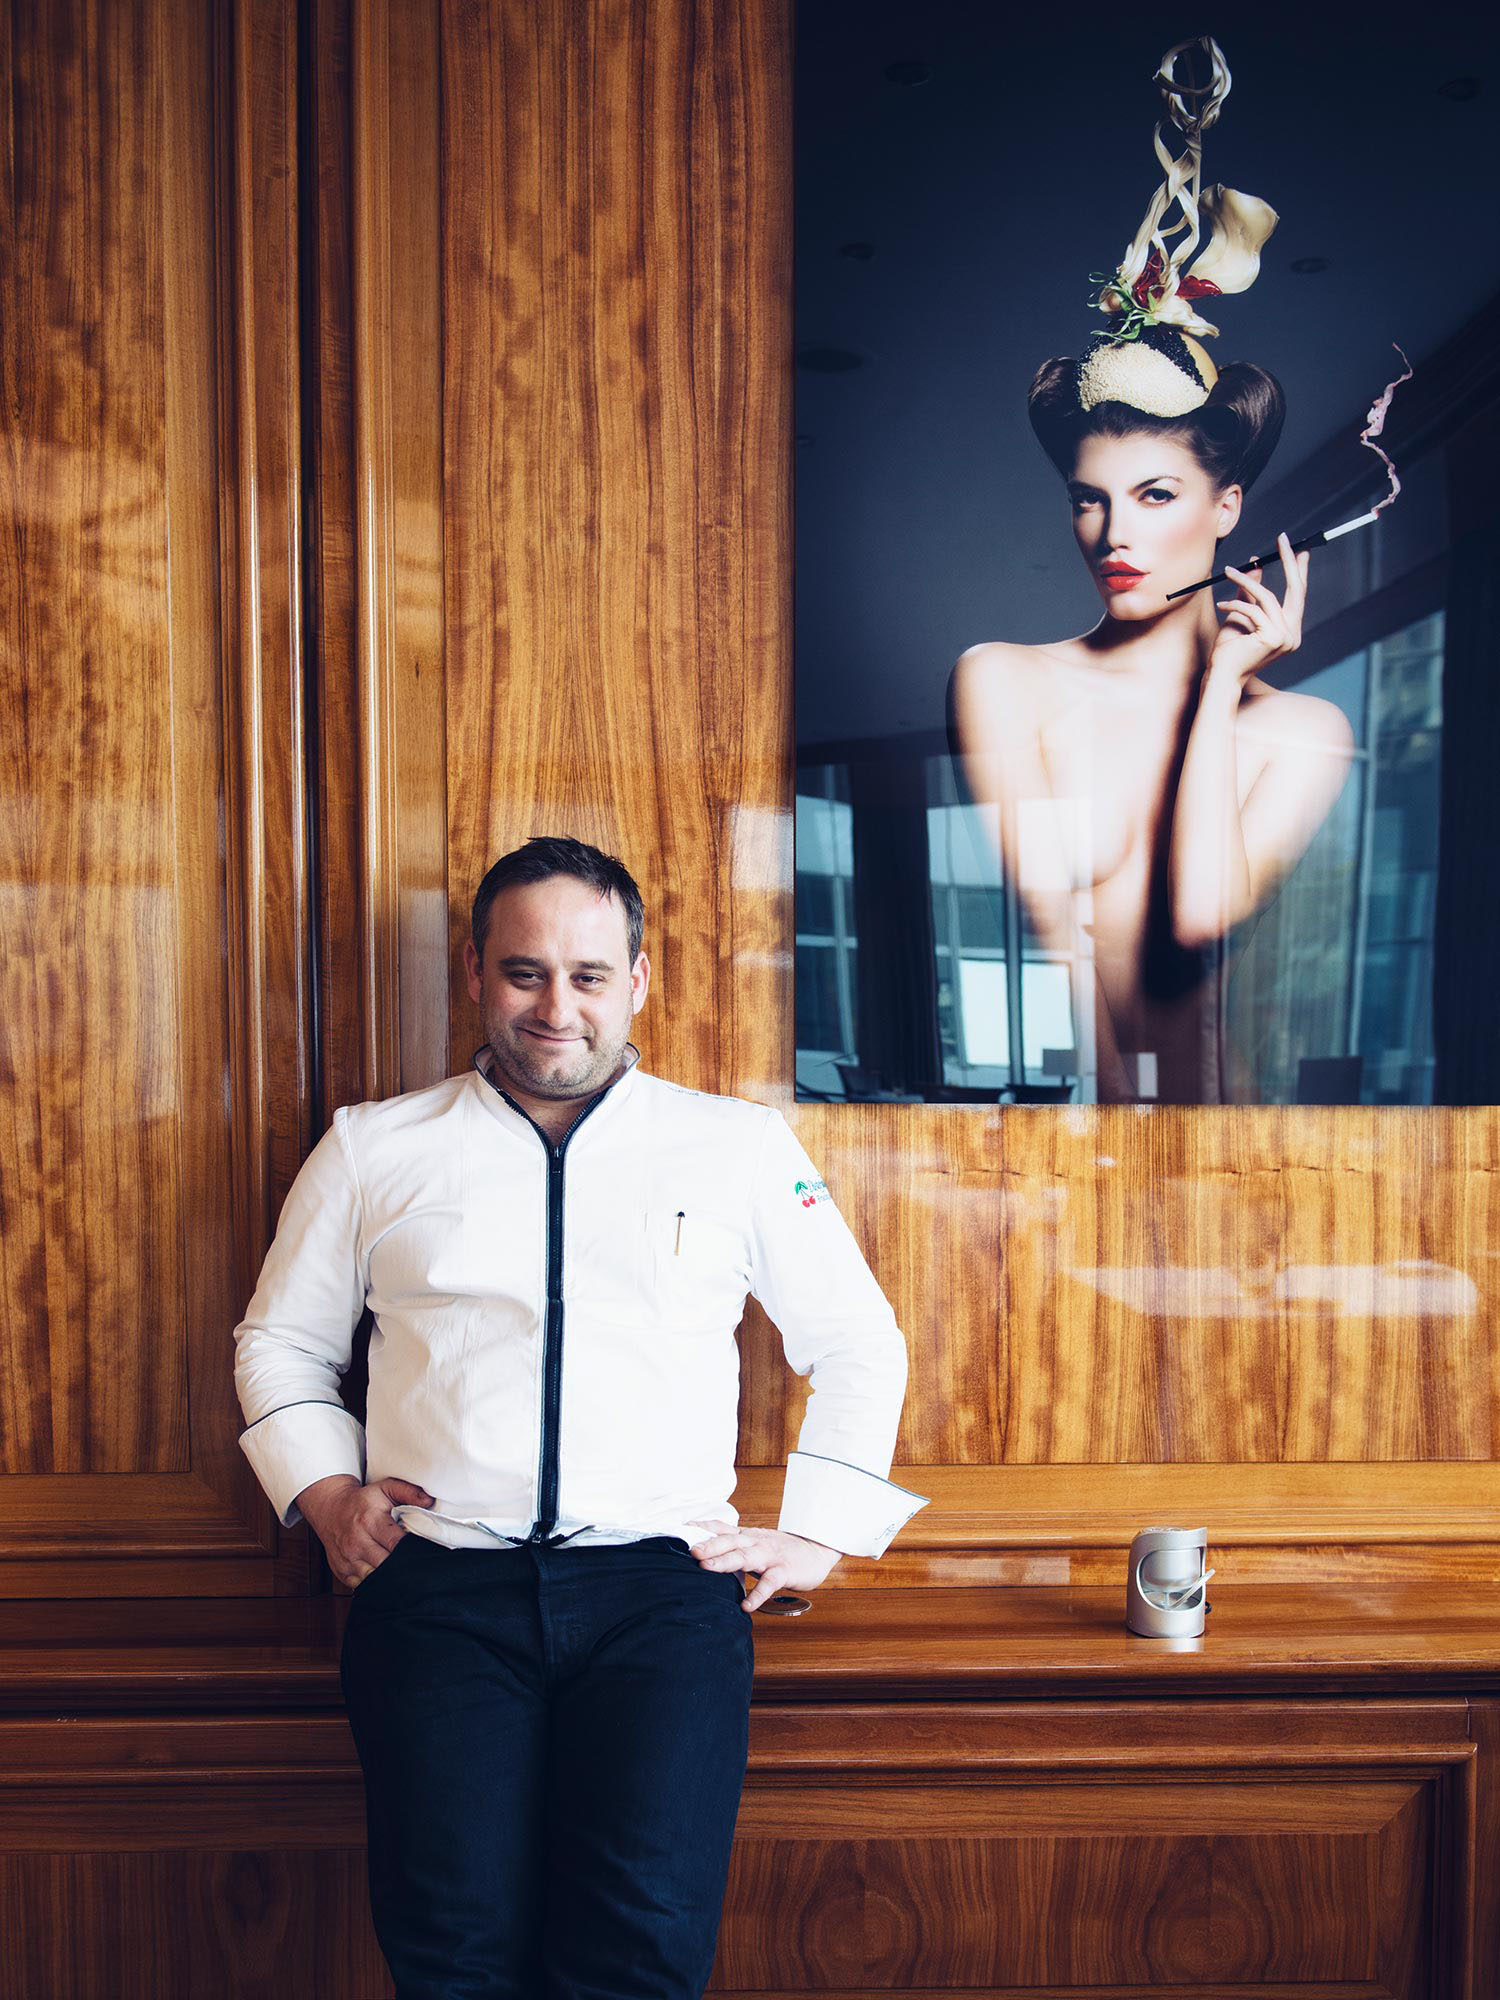 urban zintel photography — berlin's starred chefs